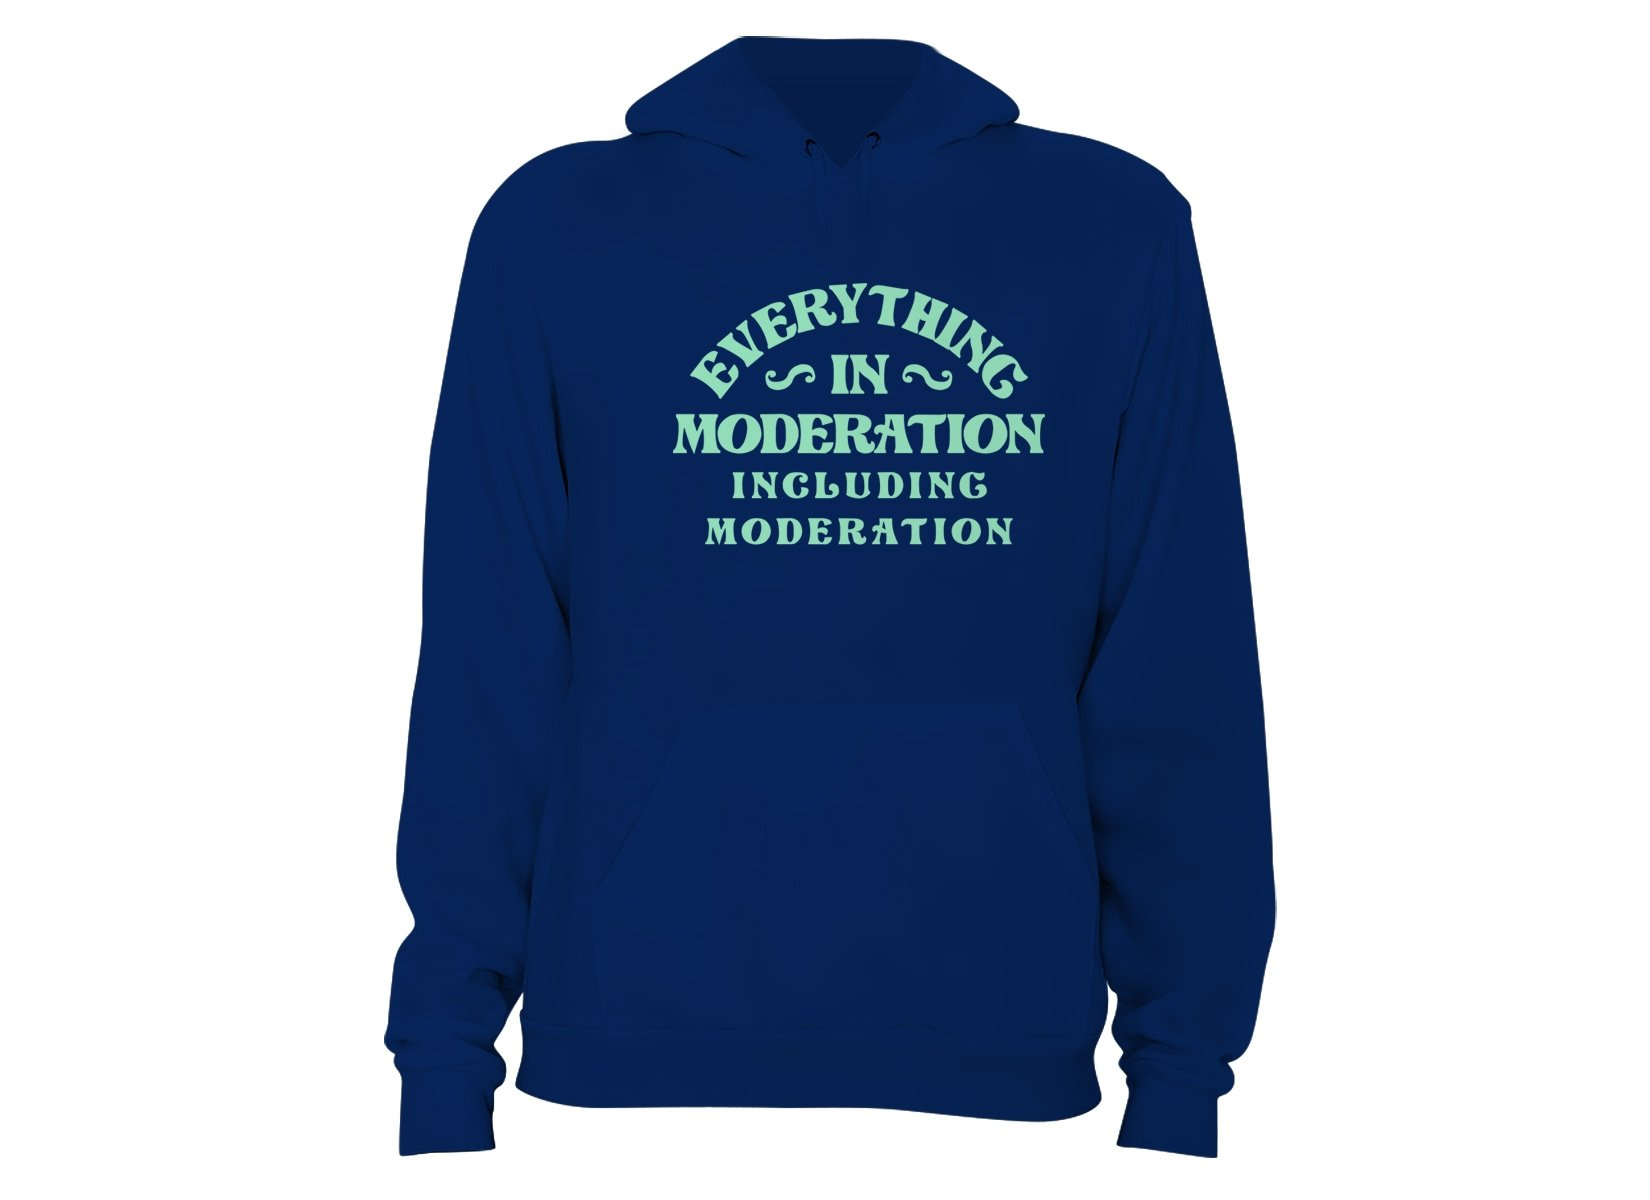 Everything In Moderation Including Moderation on Hoodie